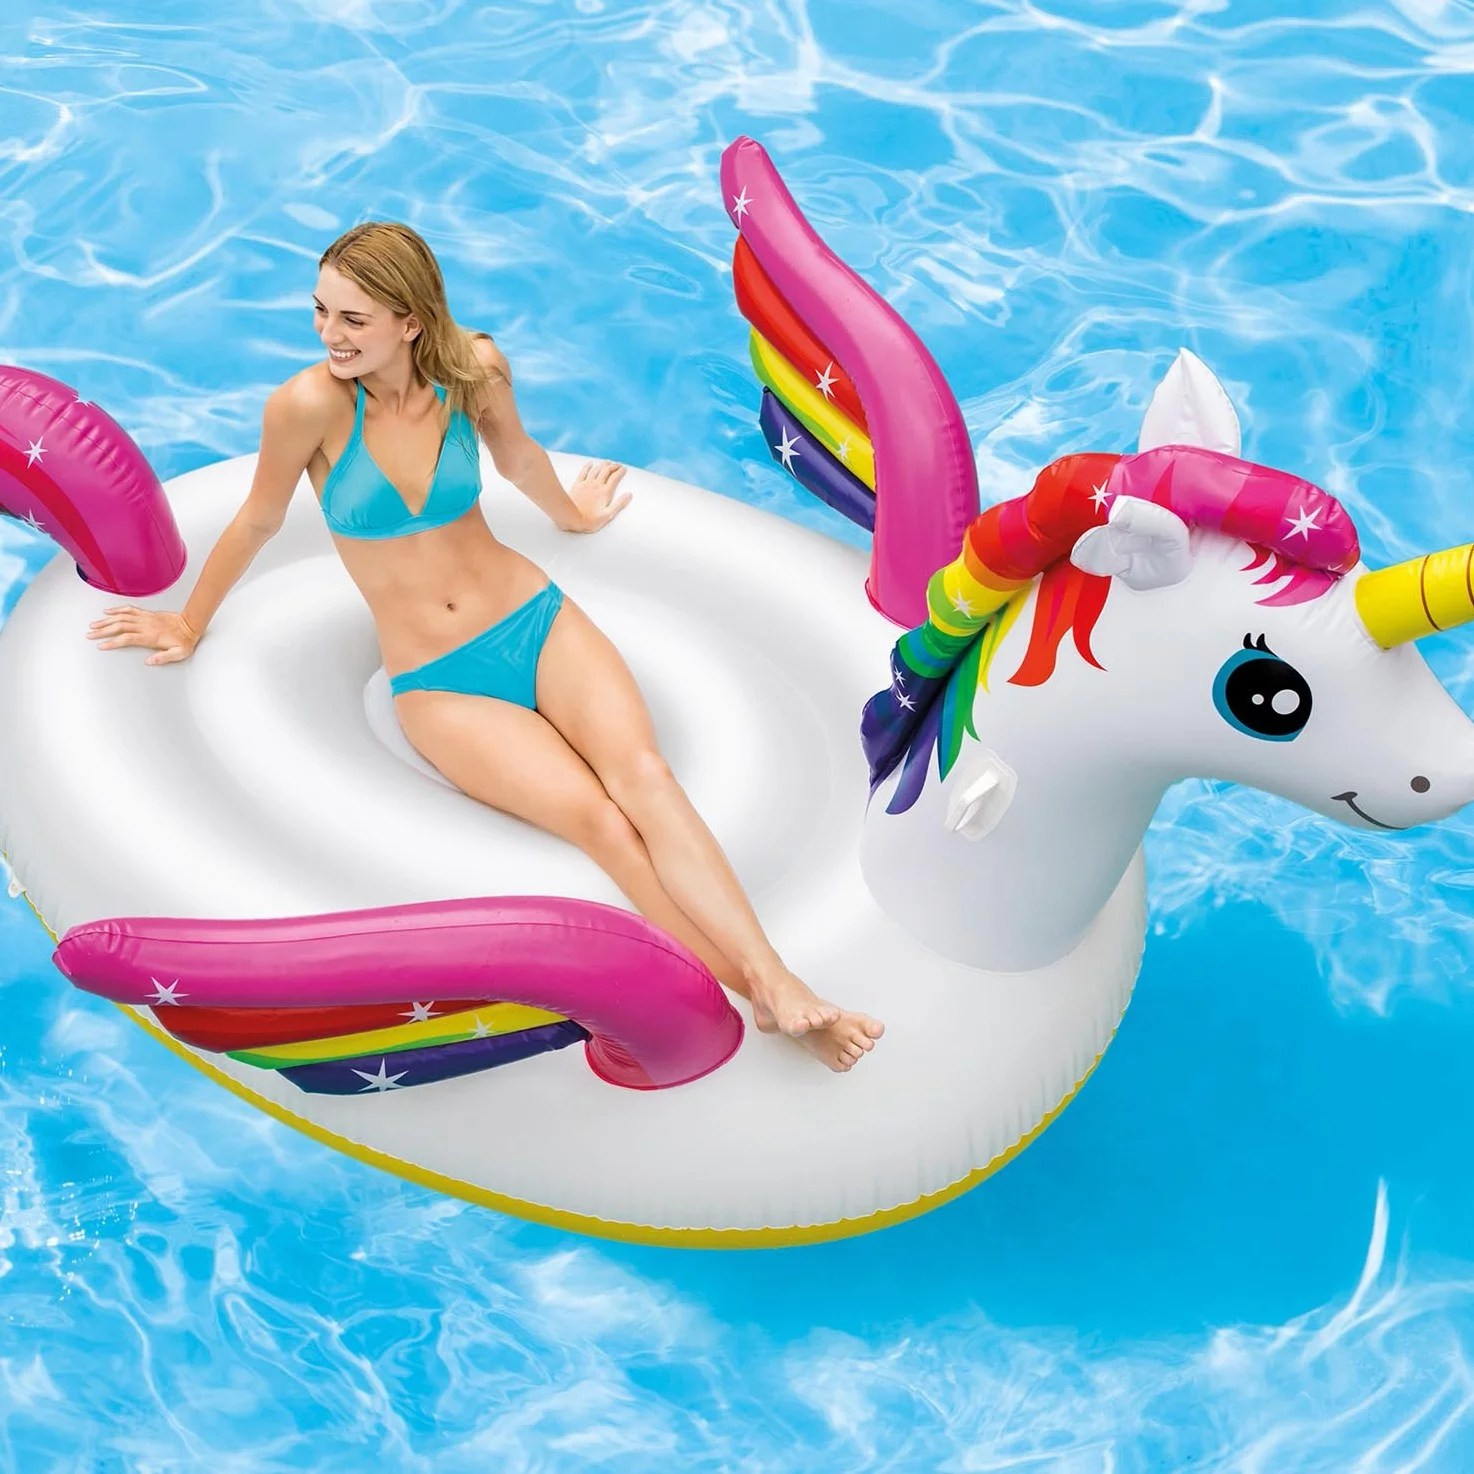 Aldi Intex Pool Cheap Pool Floats From Aldi 2018 Popsugar Home